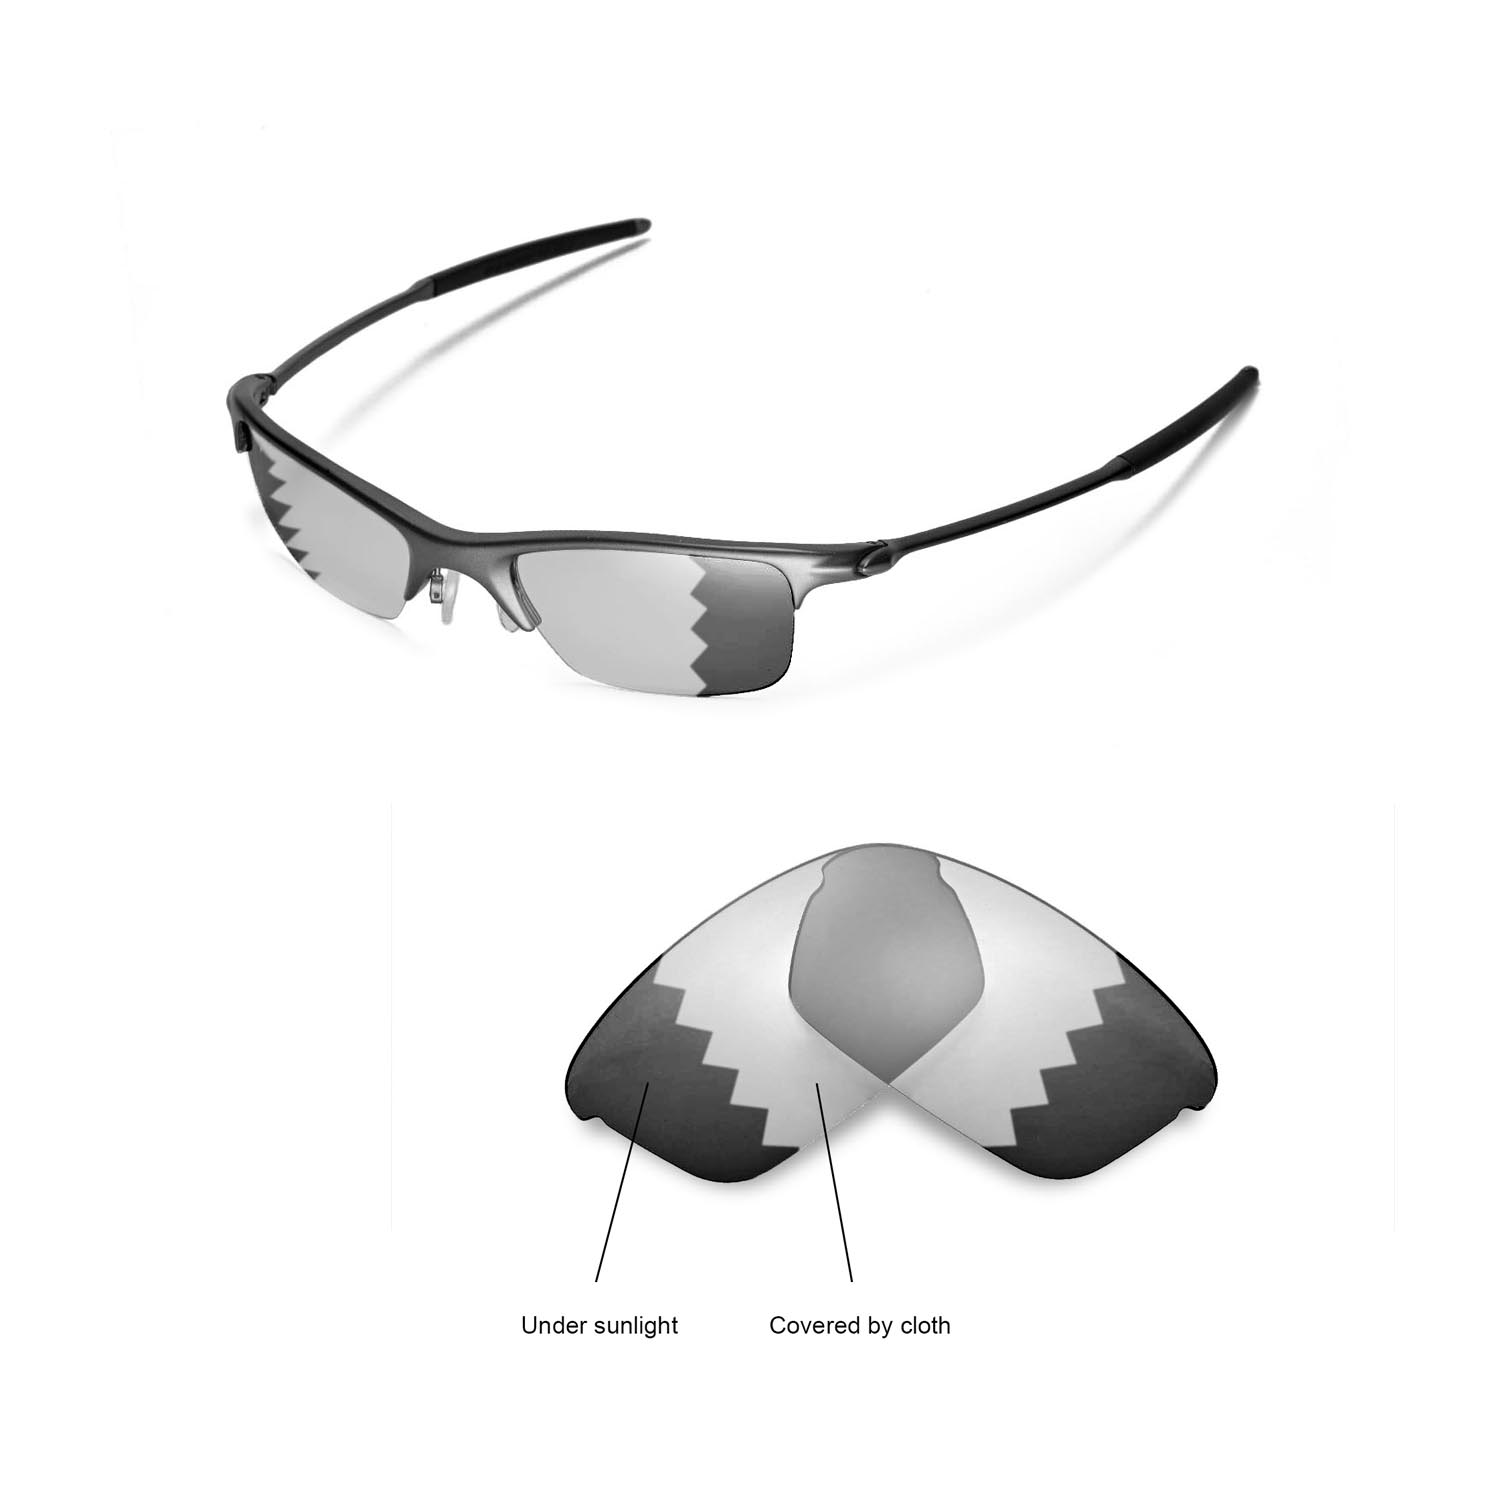 9be9b715ec Details about New Walleva Polarized Transition Replacement Lenses For Oakley  Razrwire